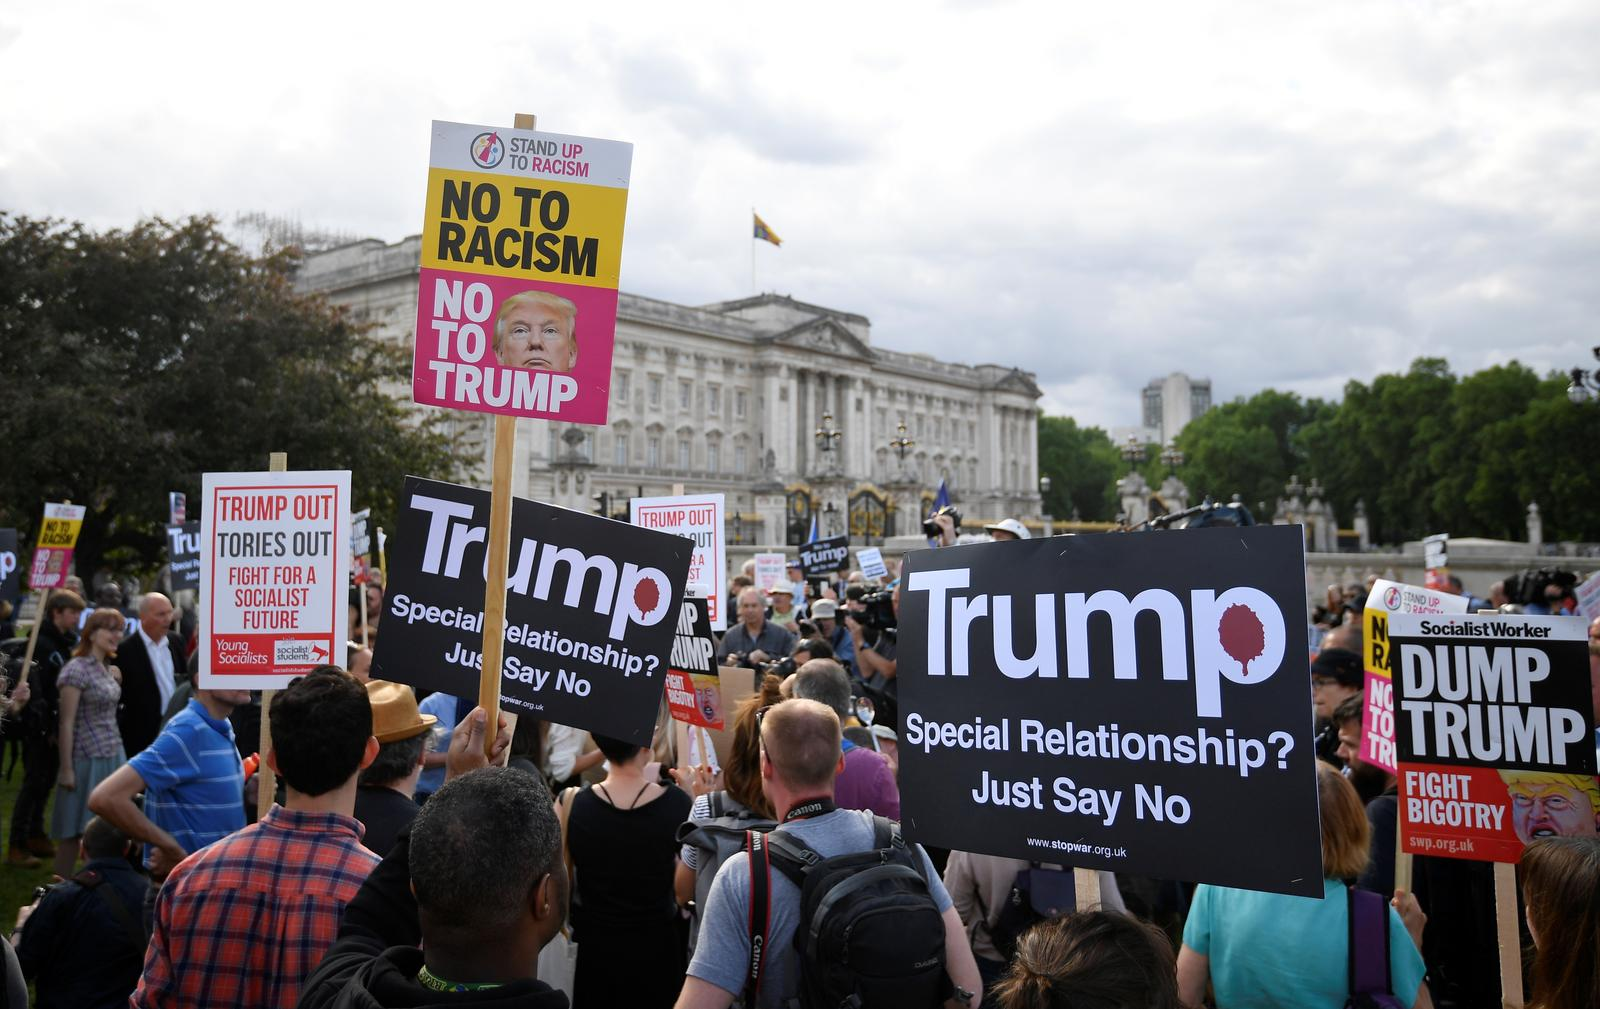 Trump turns to Brexit and Huawei as protests planned in London